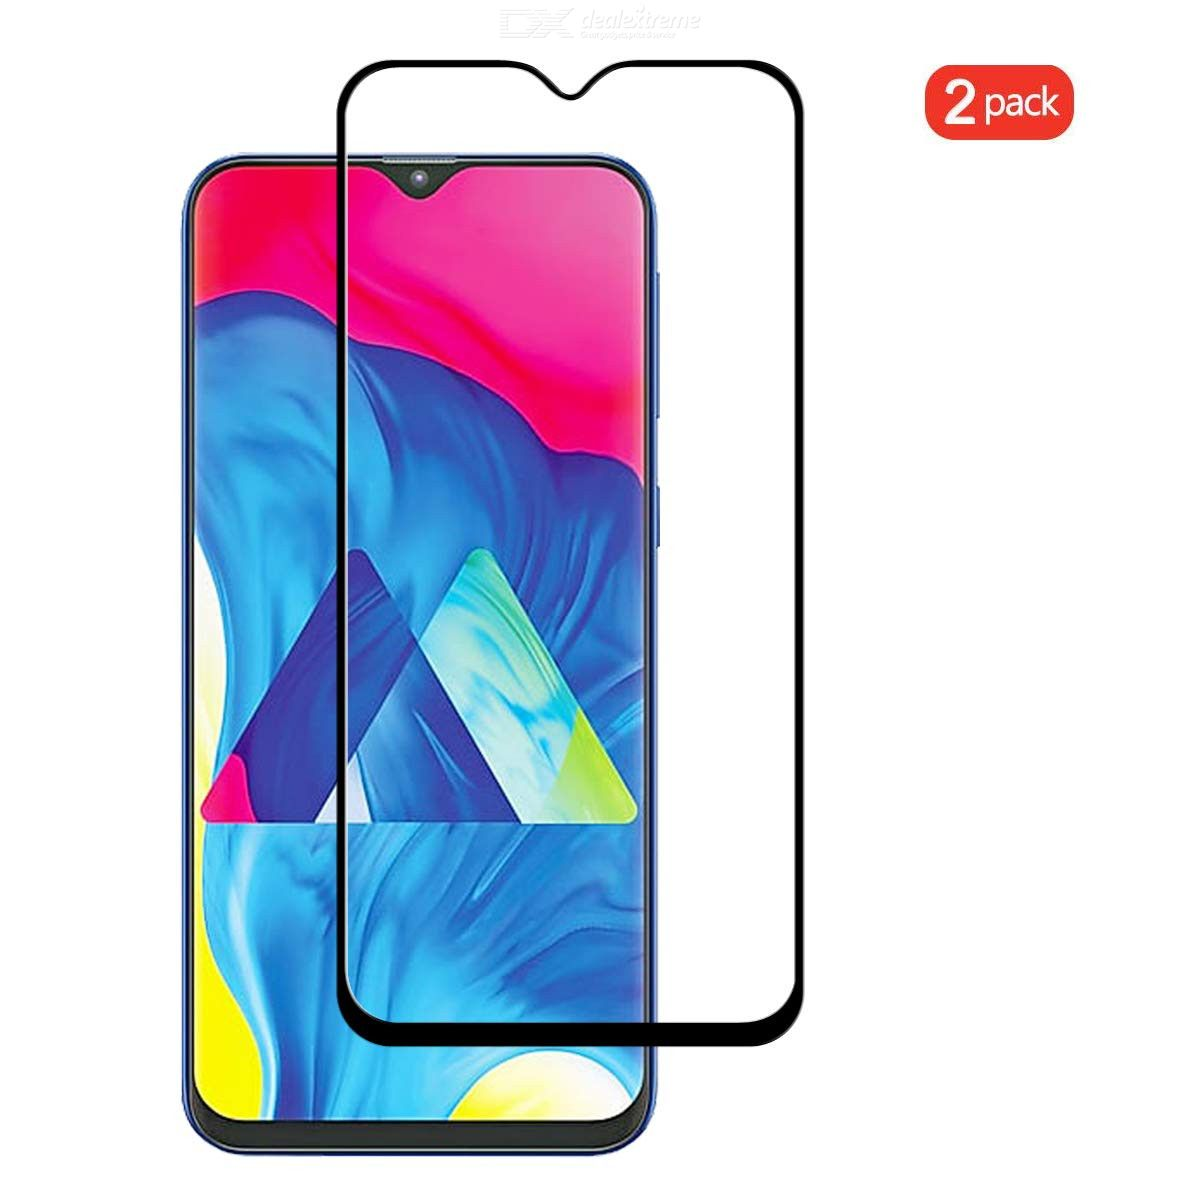 QULLOO Tempered Glass Screen Protector 2.5D Full Coverage Protection Front Film Glass Screen Protector for Samsung Galaxy A20e